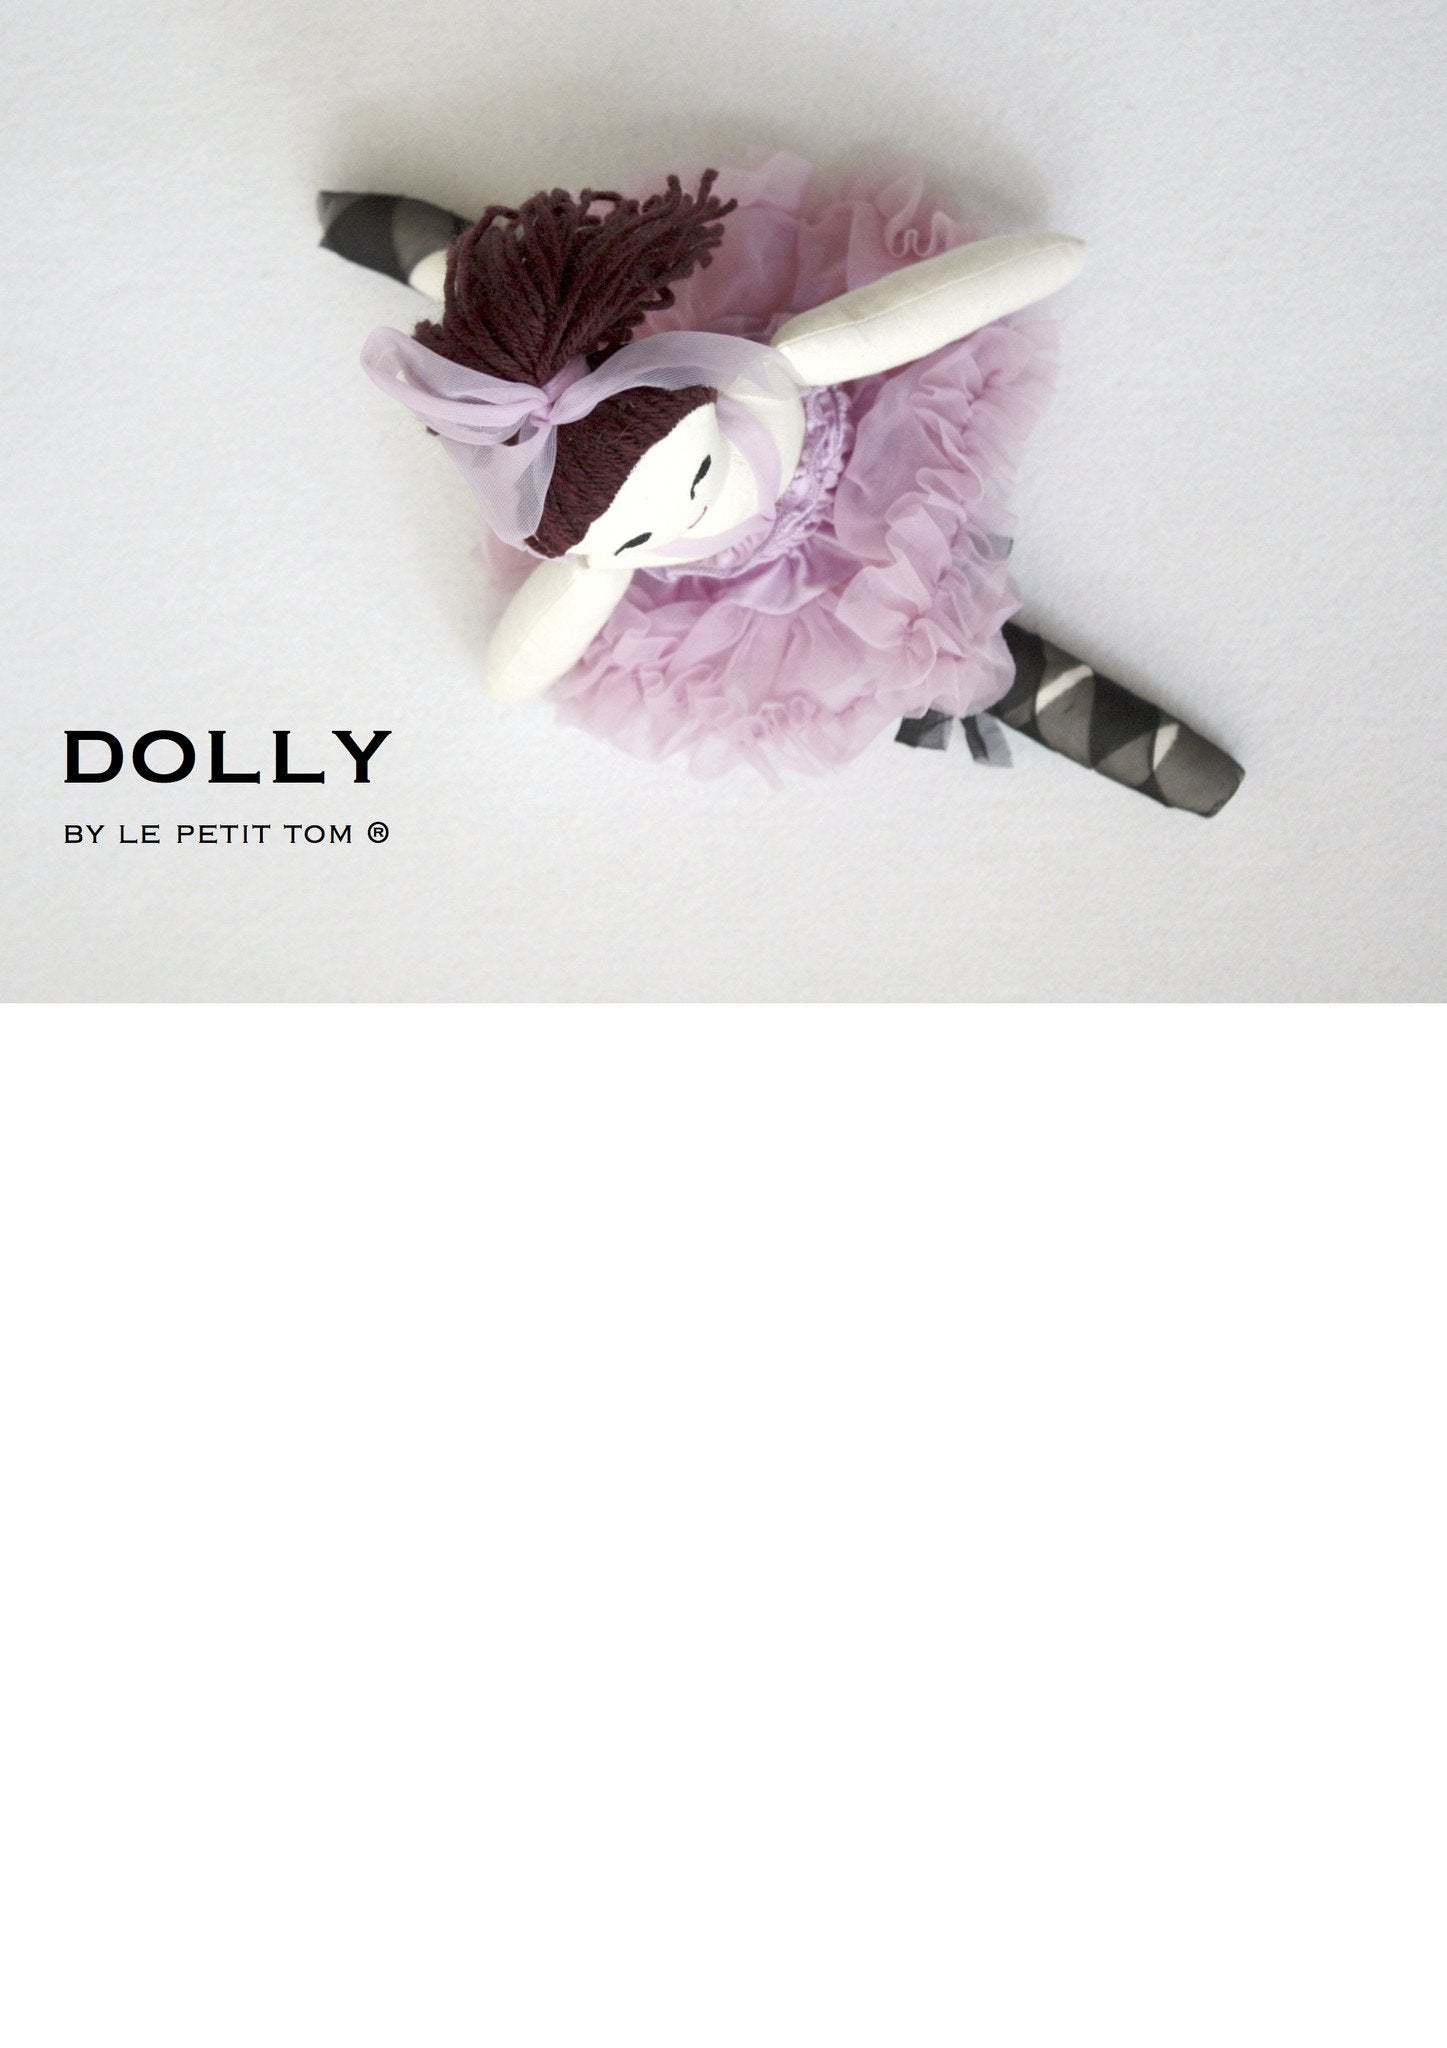 DOLLY by Le Petit Tom ® VIOLET DOLL (with ponytail) violet